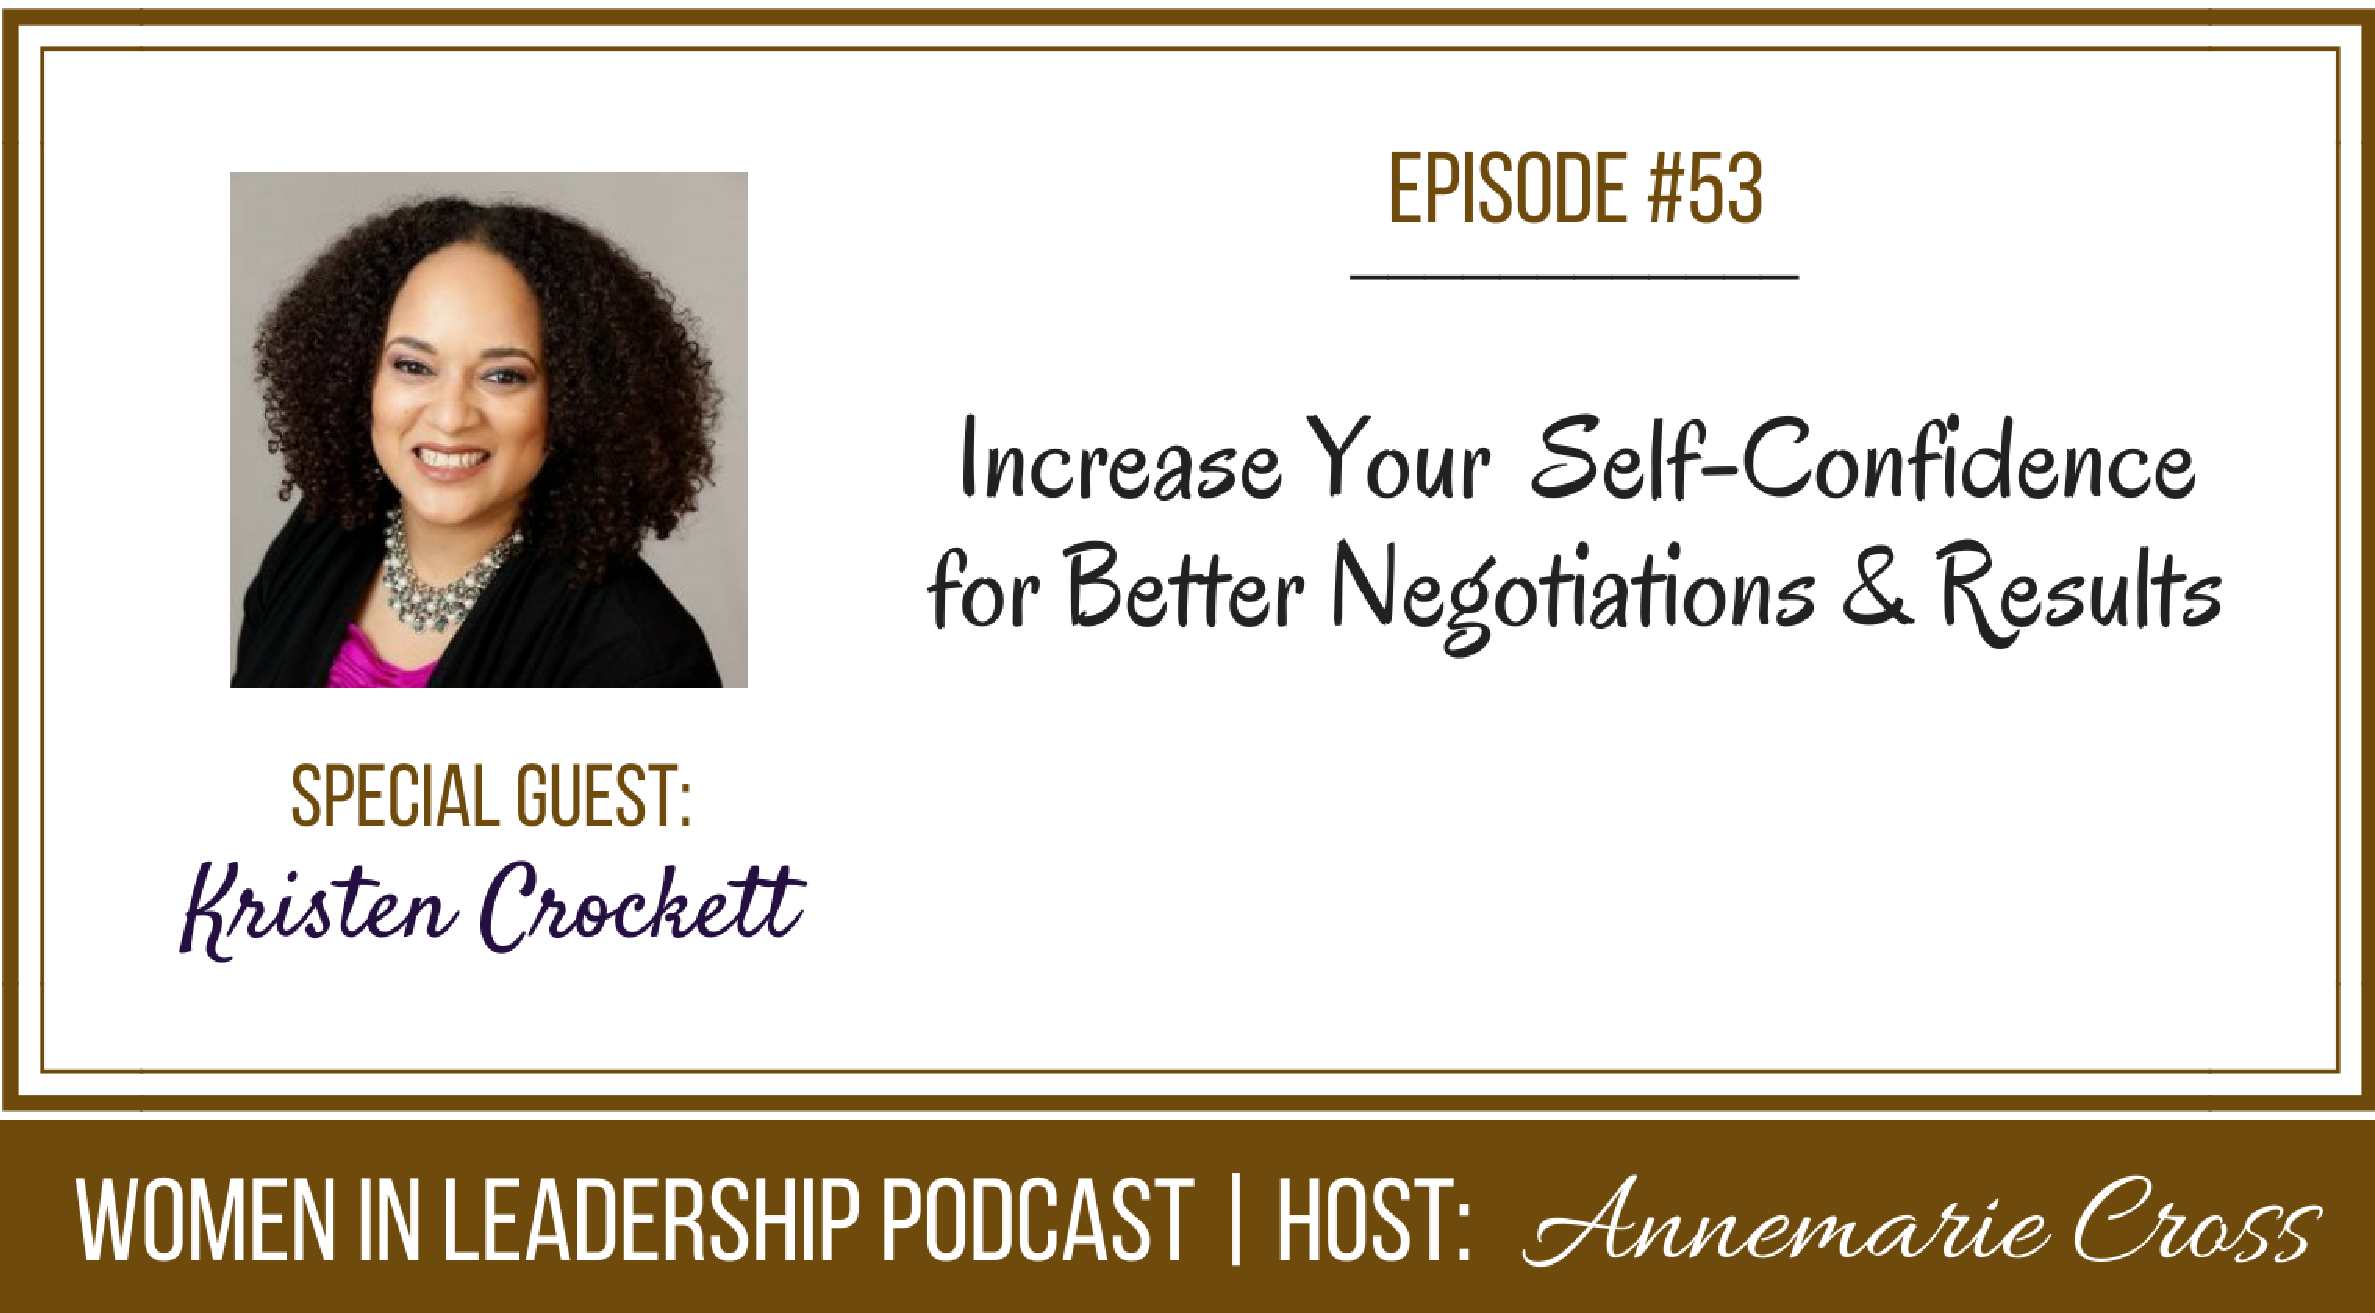 [Ep#53] Increase Your Self-Confidence for Better Negotiations & Results